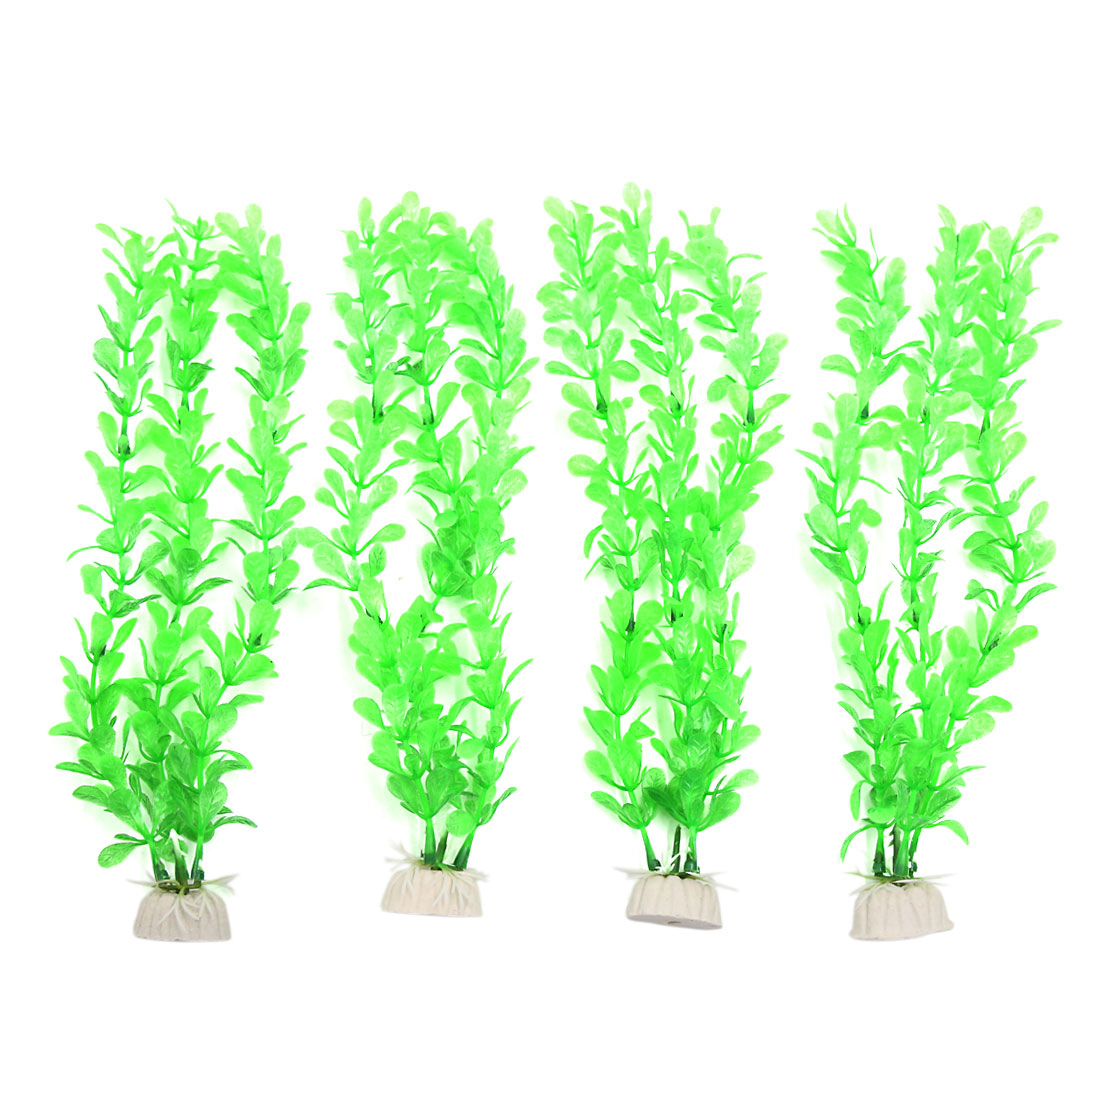 4pcs Green Plastic Aquarium Fish Tank Aquatic Water Plant Decoration Ornament